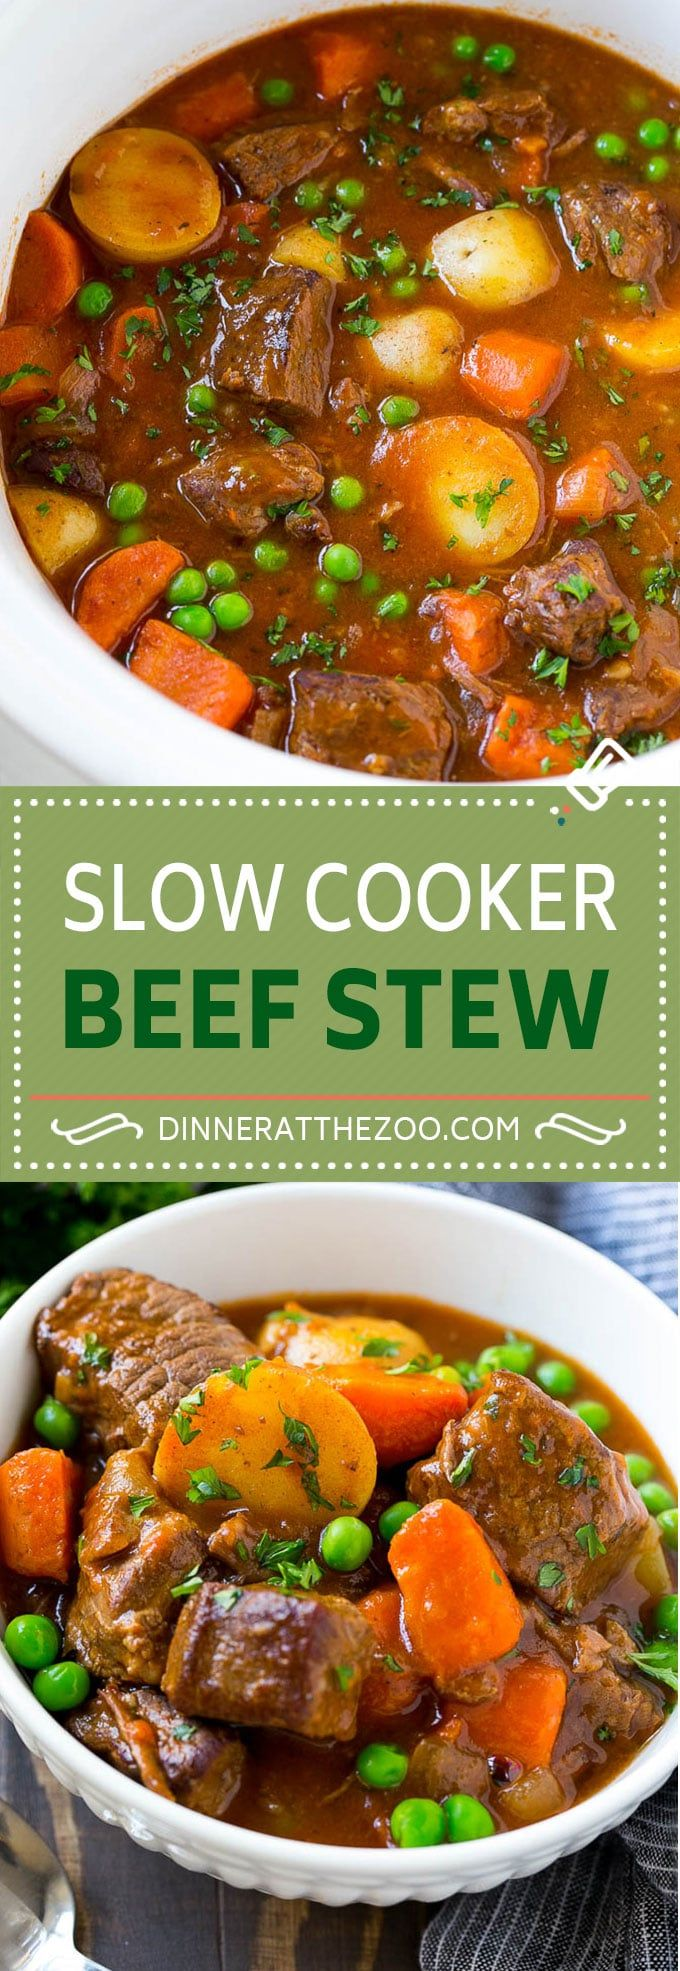 Slow Cooker Beef Stew Recipe | Beef and Potato Stew | Crock Pot Beef Stew | Easy Beef Stew